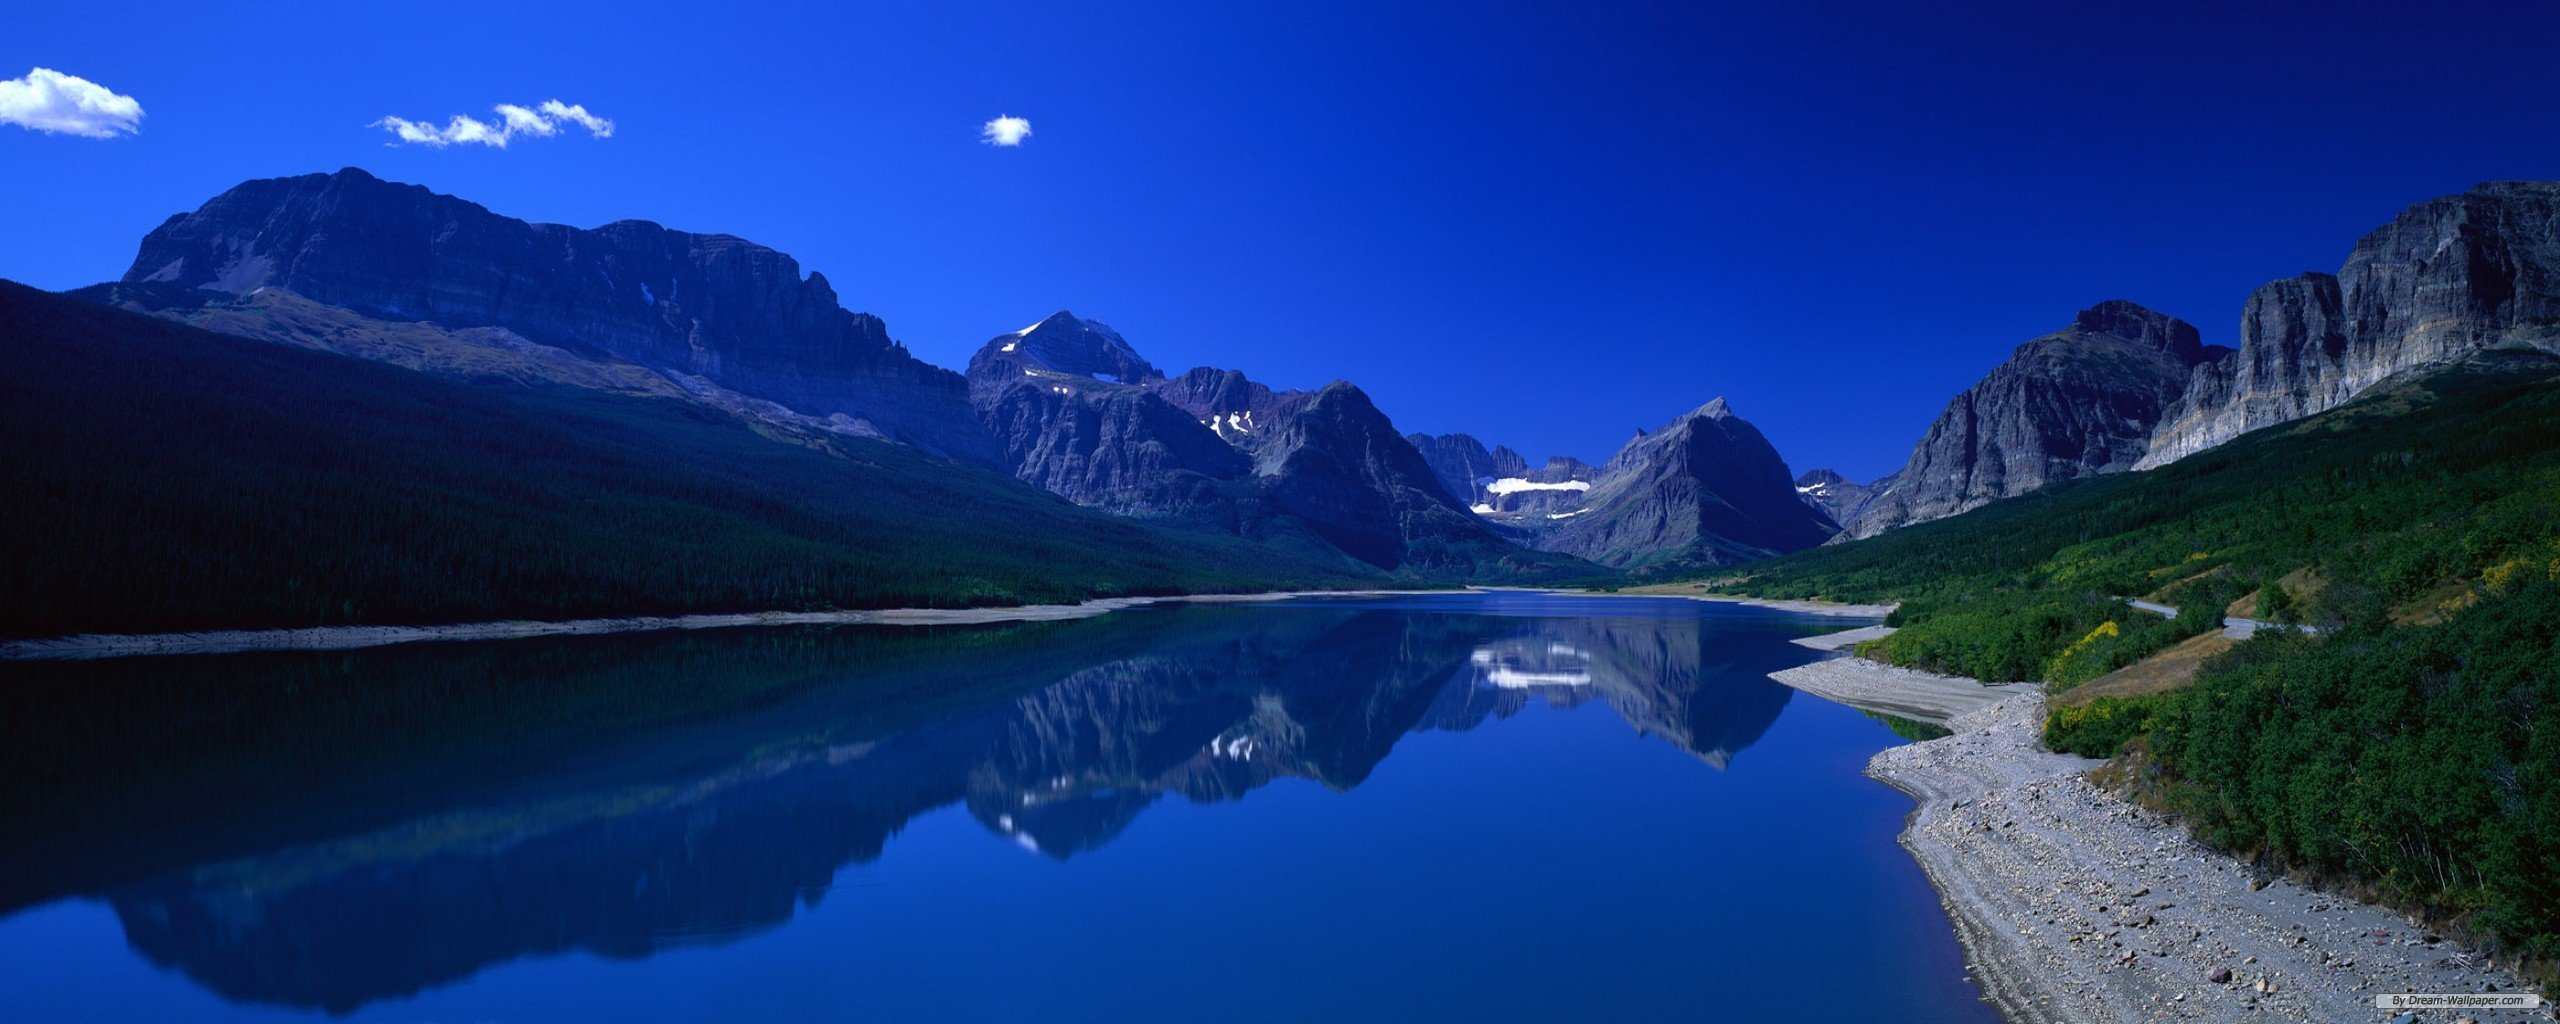 50 free large screen wallpapers on wallpapersafari - Large screen wallpapers free ...